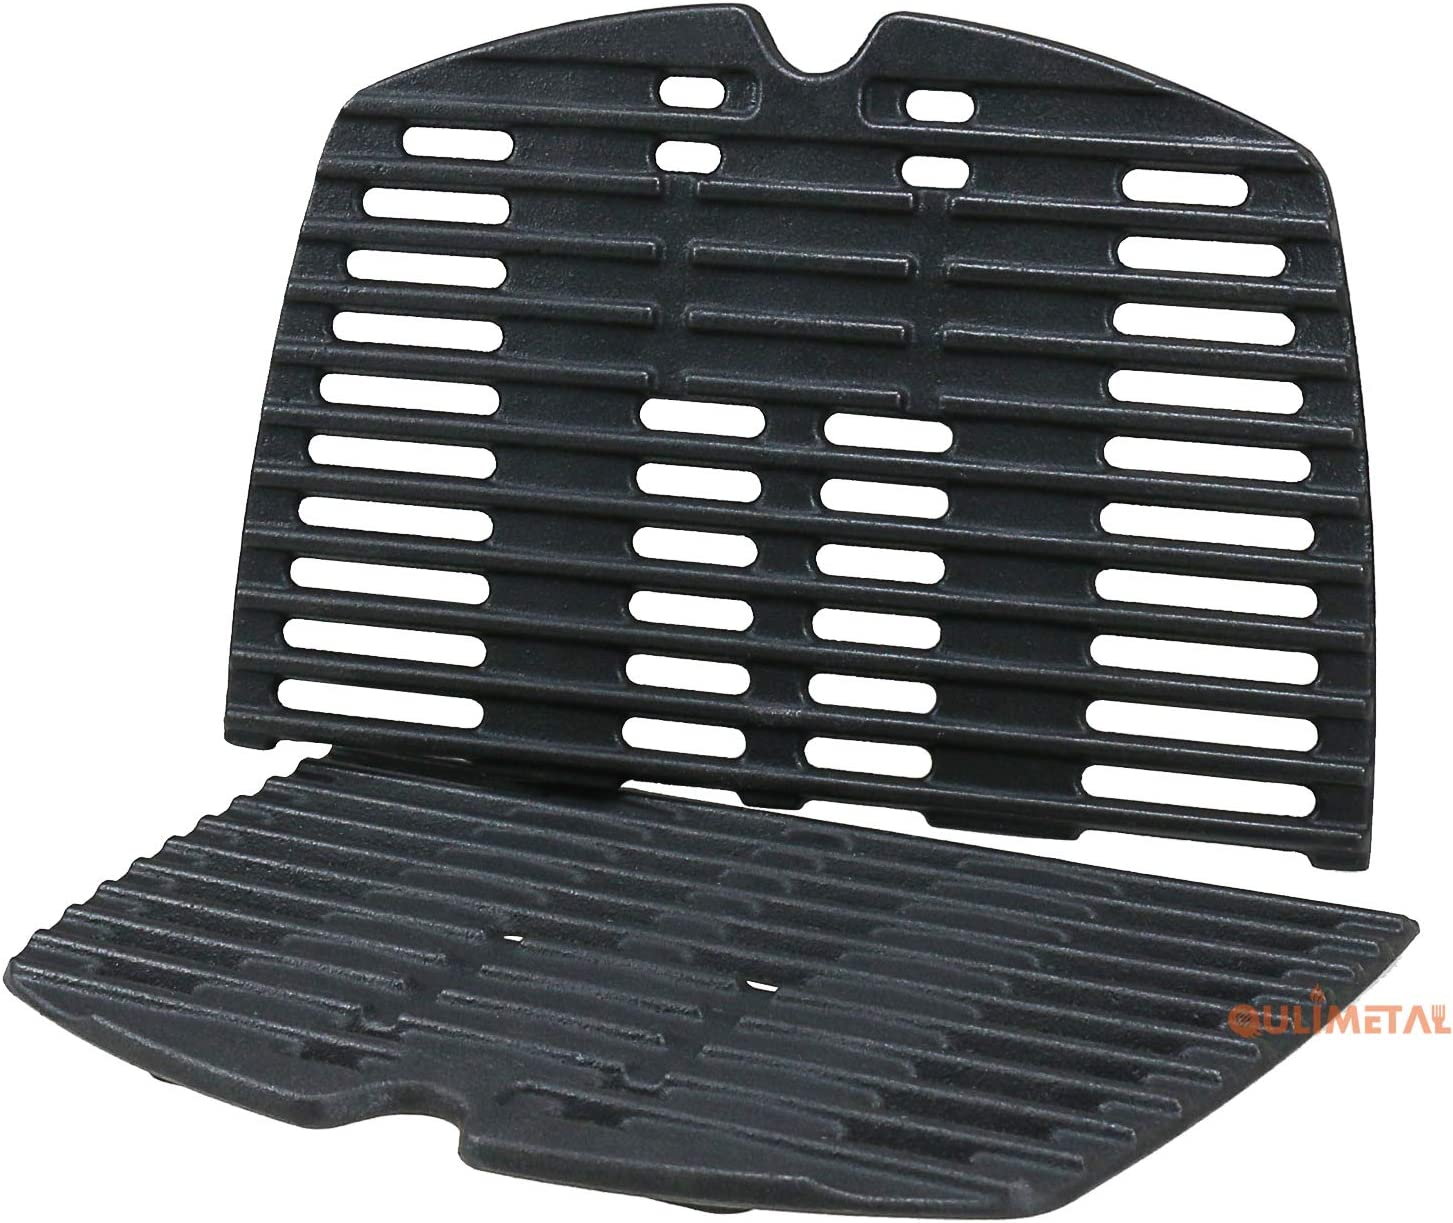 BBQ Tools & Accessories Home & Garden Cast Iron Barbecue Gas